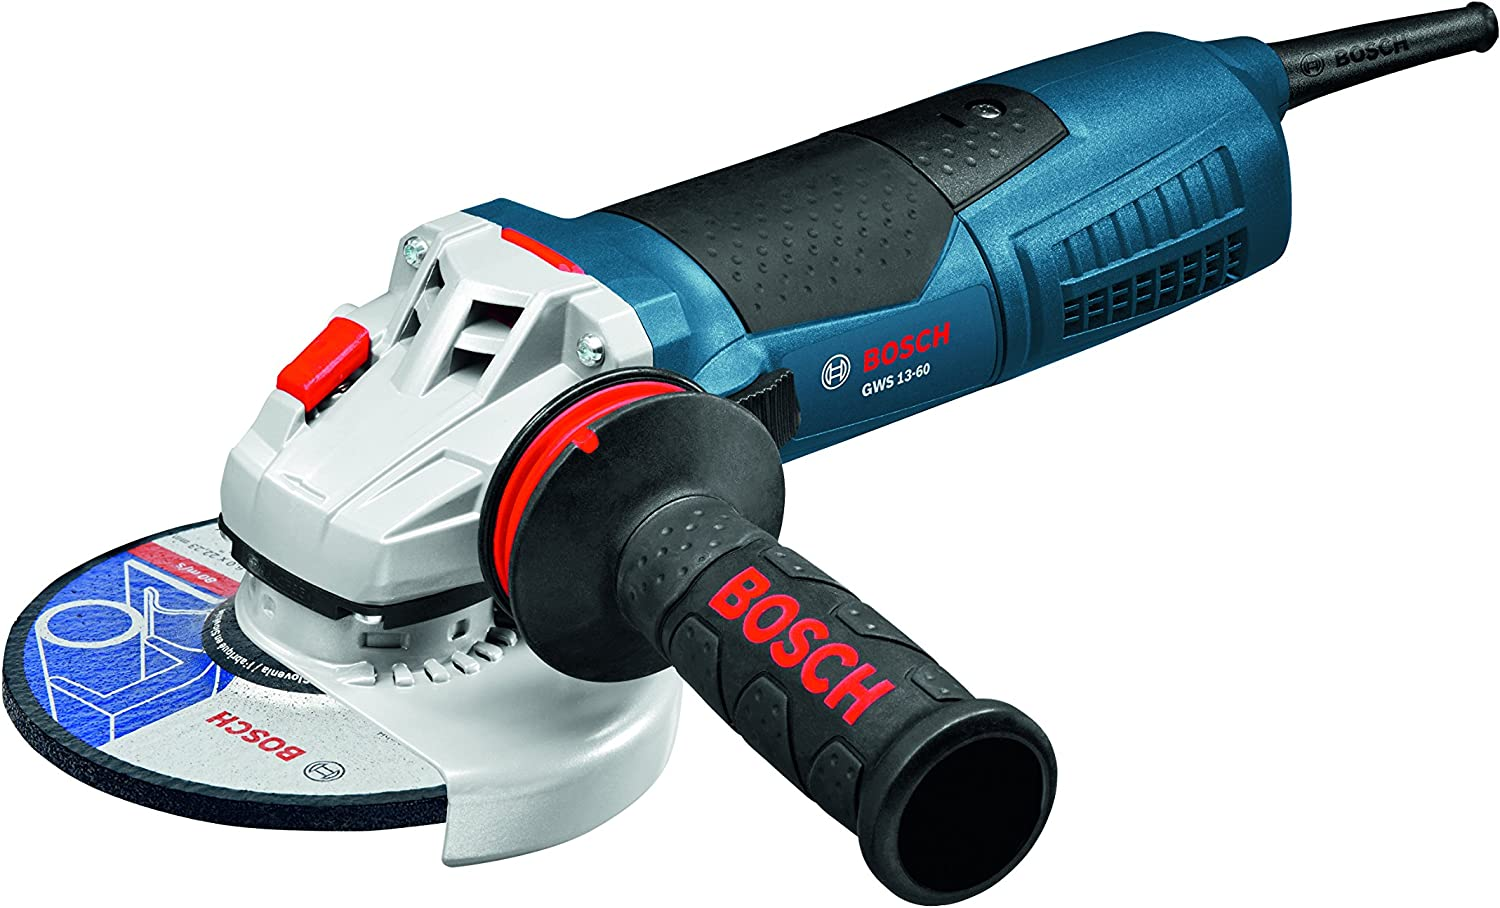 Bosch GWS13-60 High-Performance Angle Grinder, 6